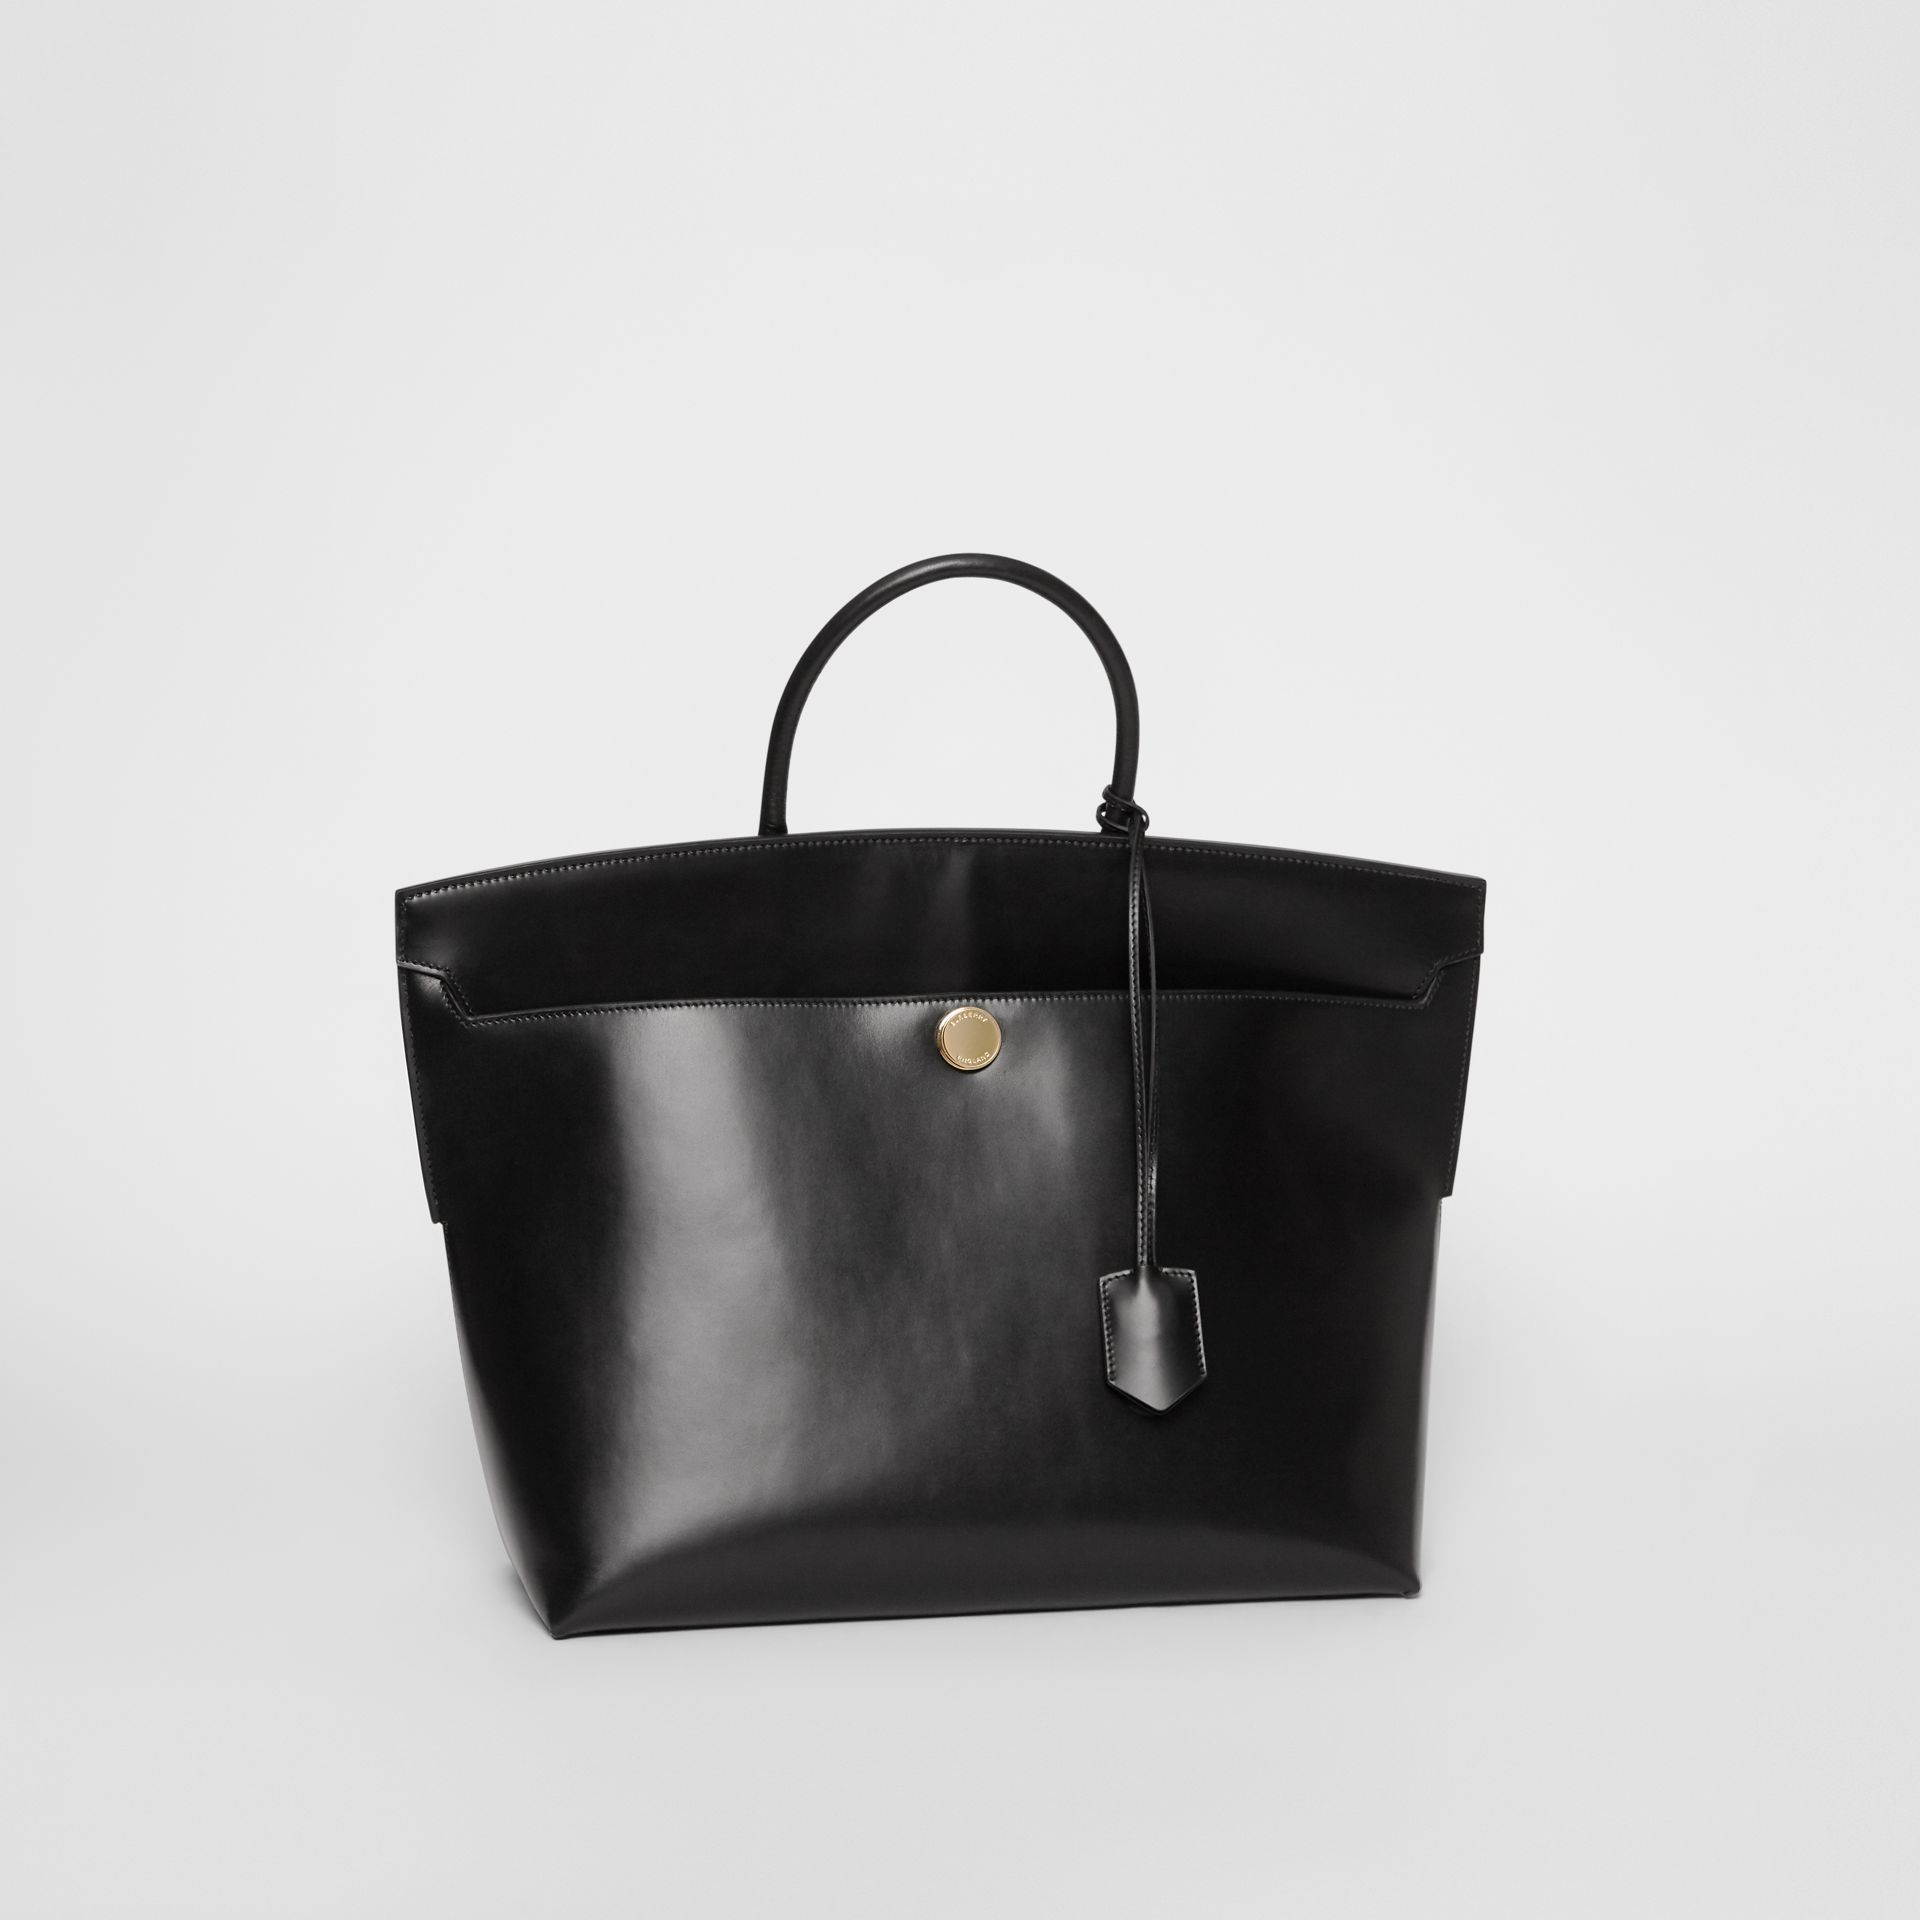 Leather Society Top Handle Bag in Black - Women | Burberry - gallery image 6